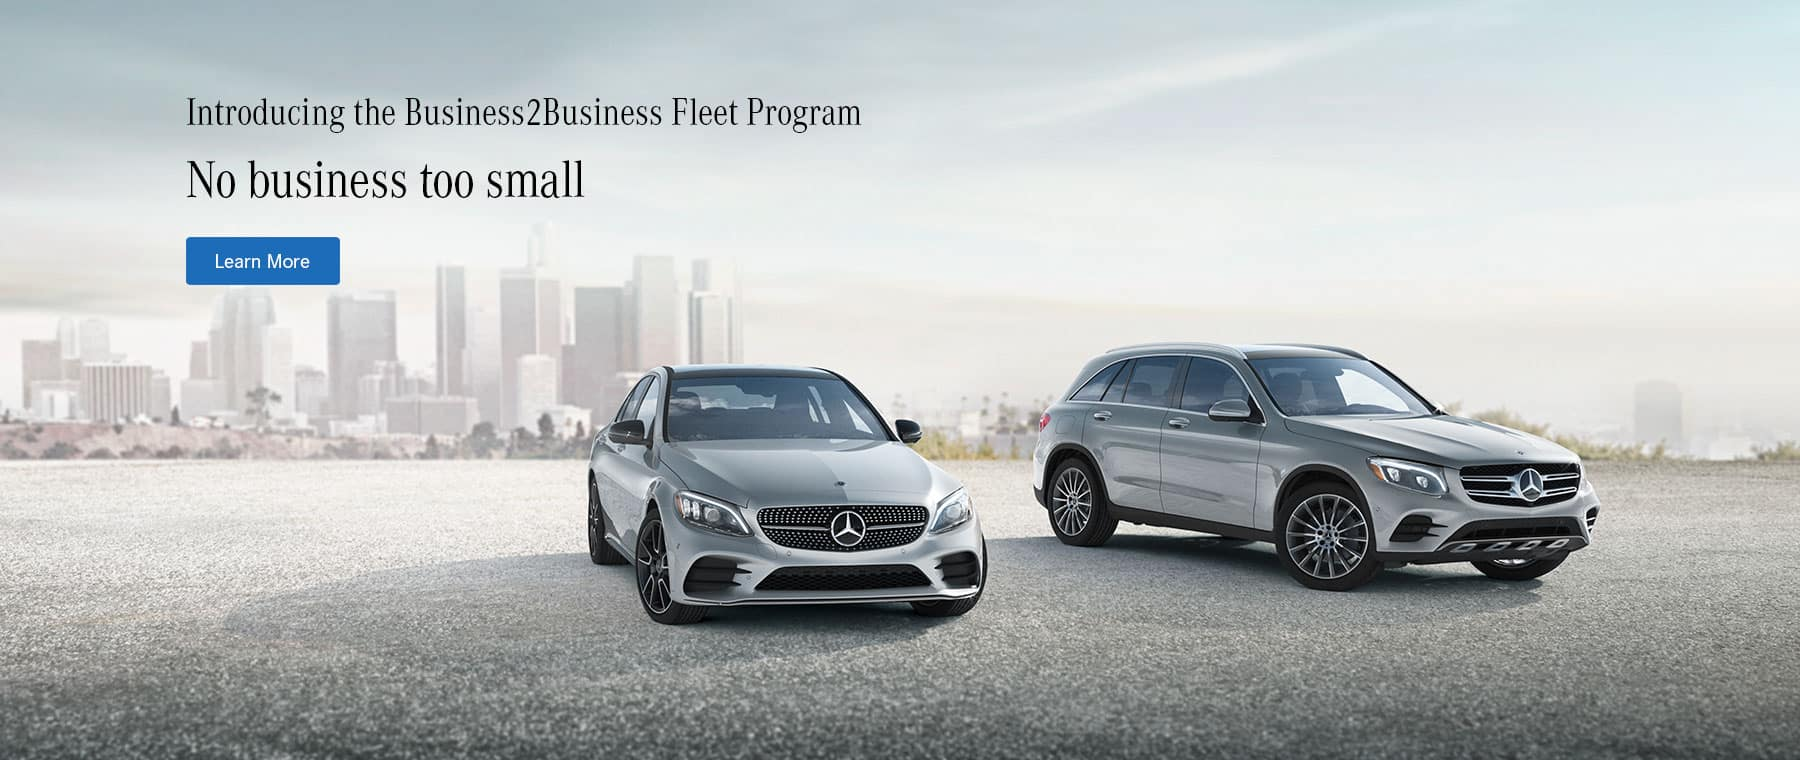 Mercedes Benz Pennsylvania Luxury Auto Dealer